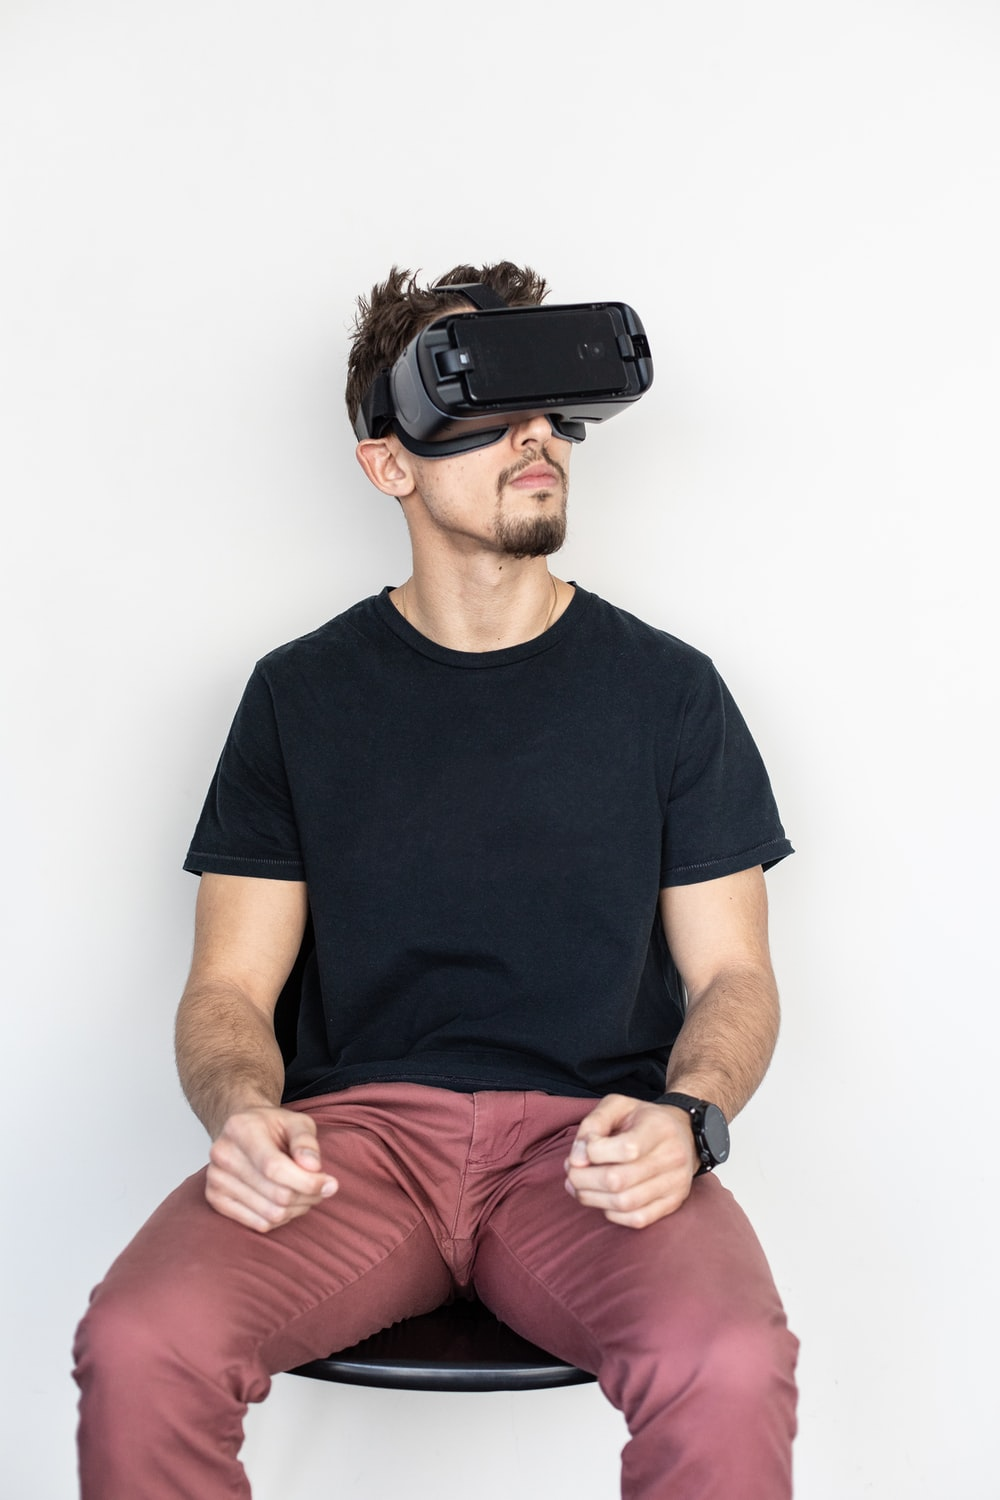 man sitting and using black virtual reality headset